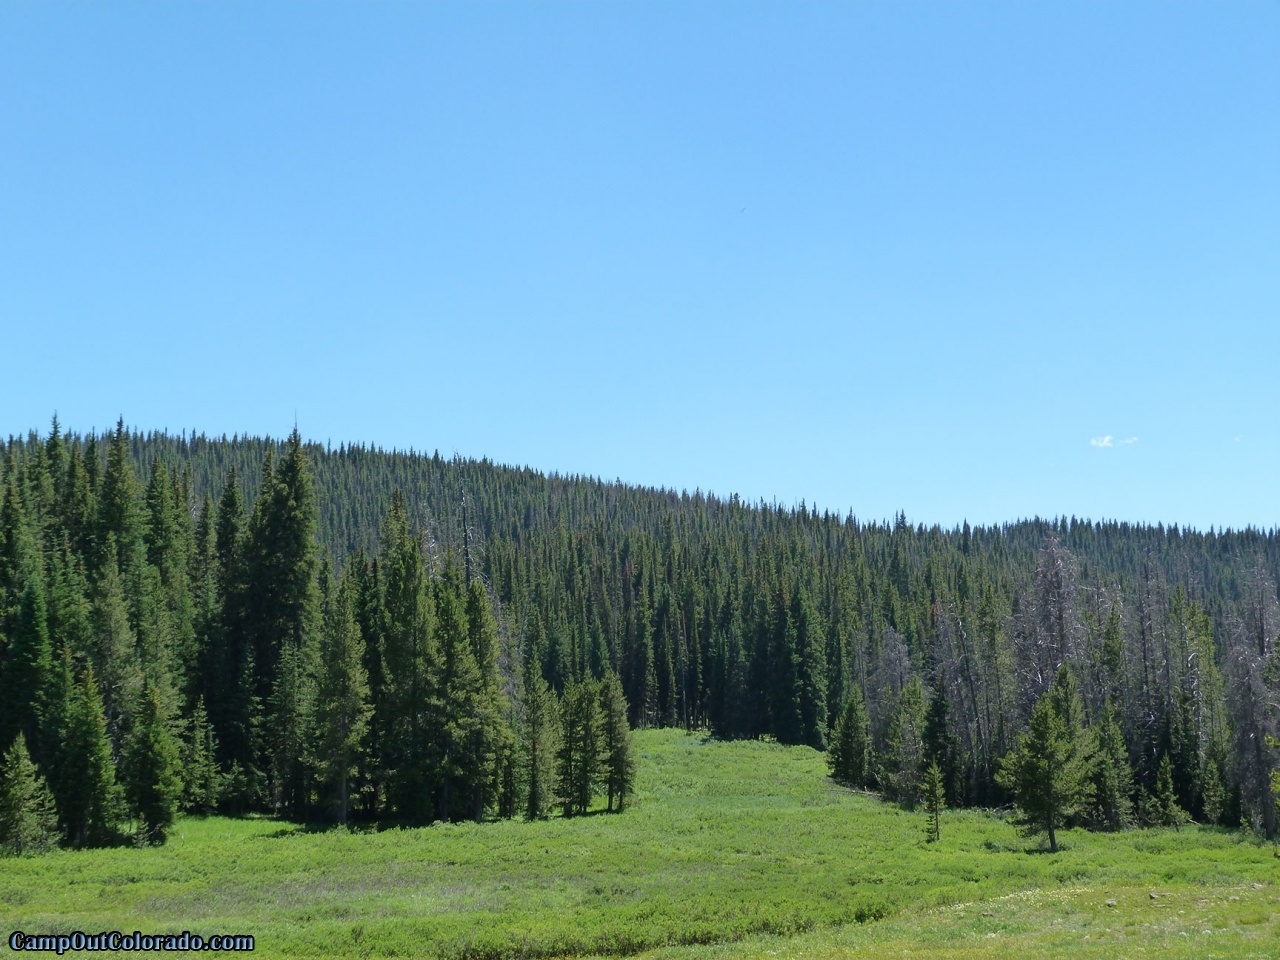 campoutcolorado-meadows-campground-rabbit-ears-view